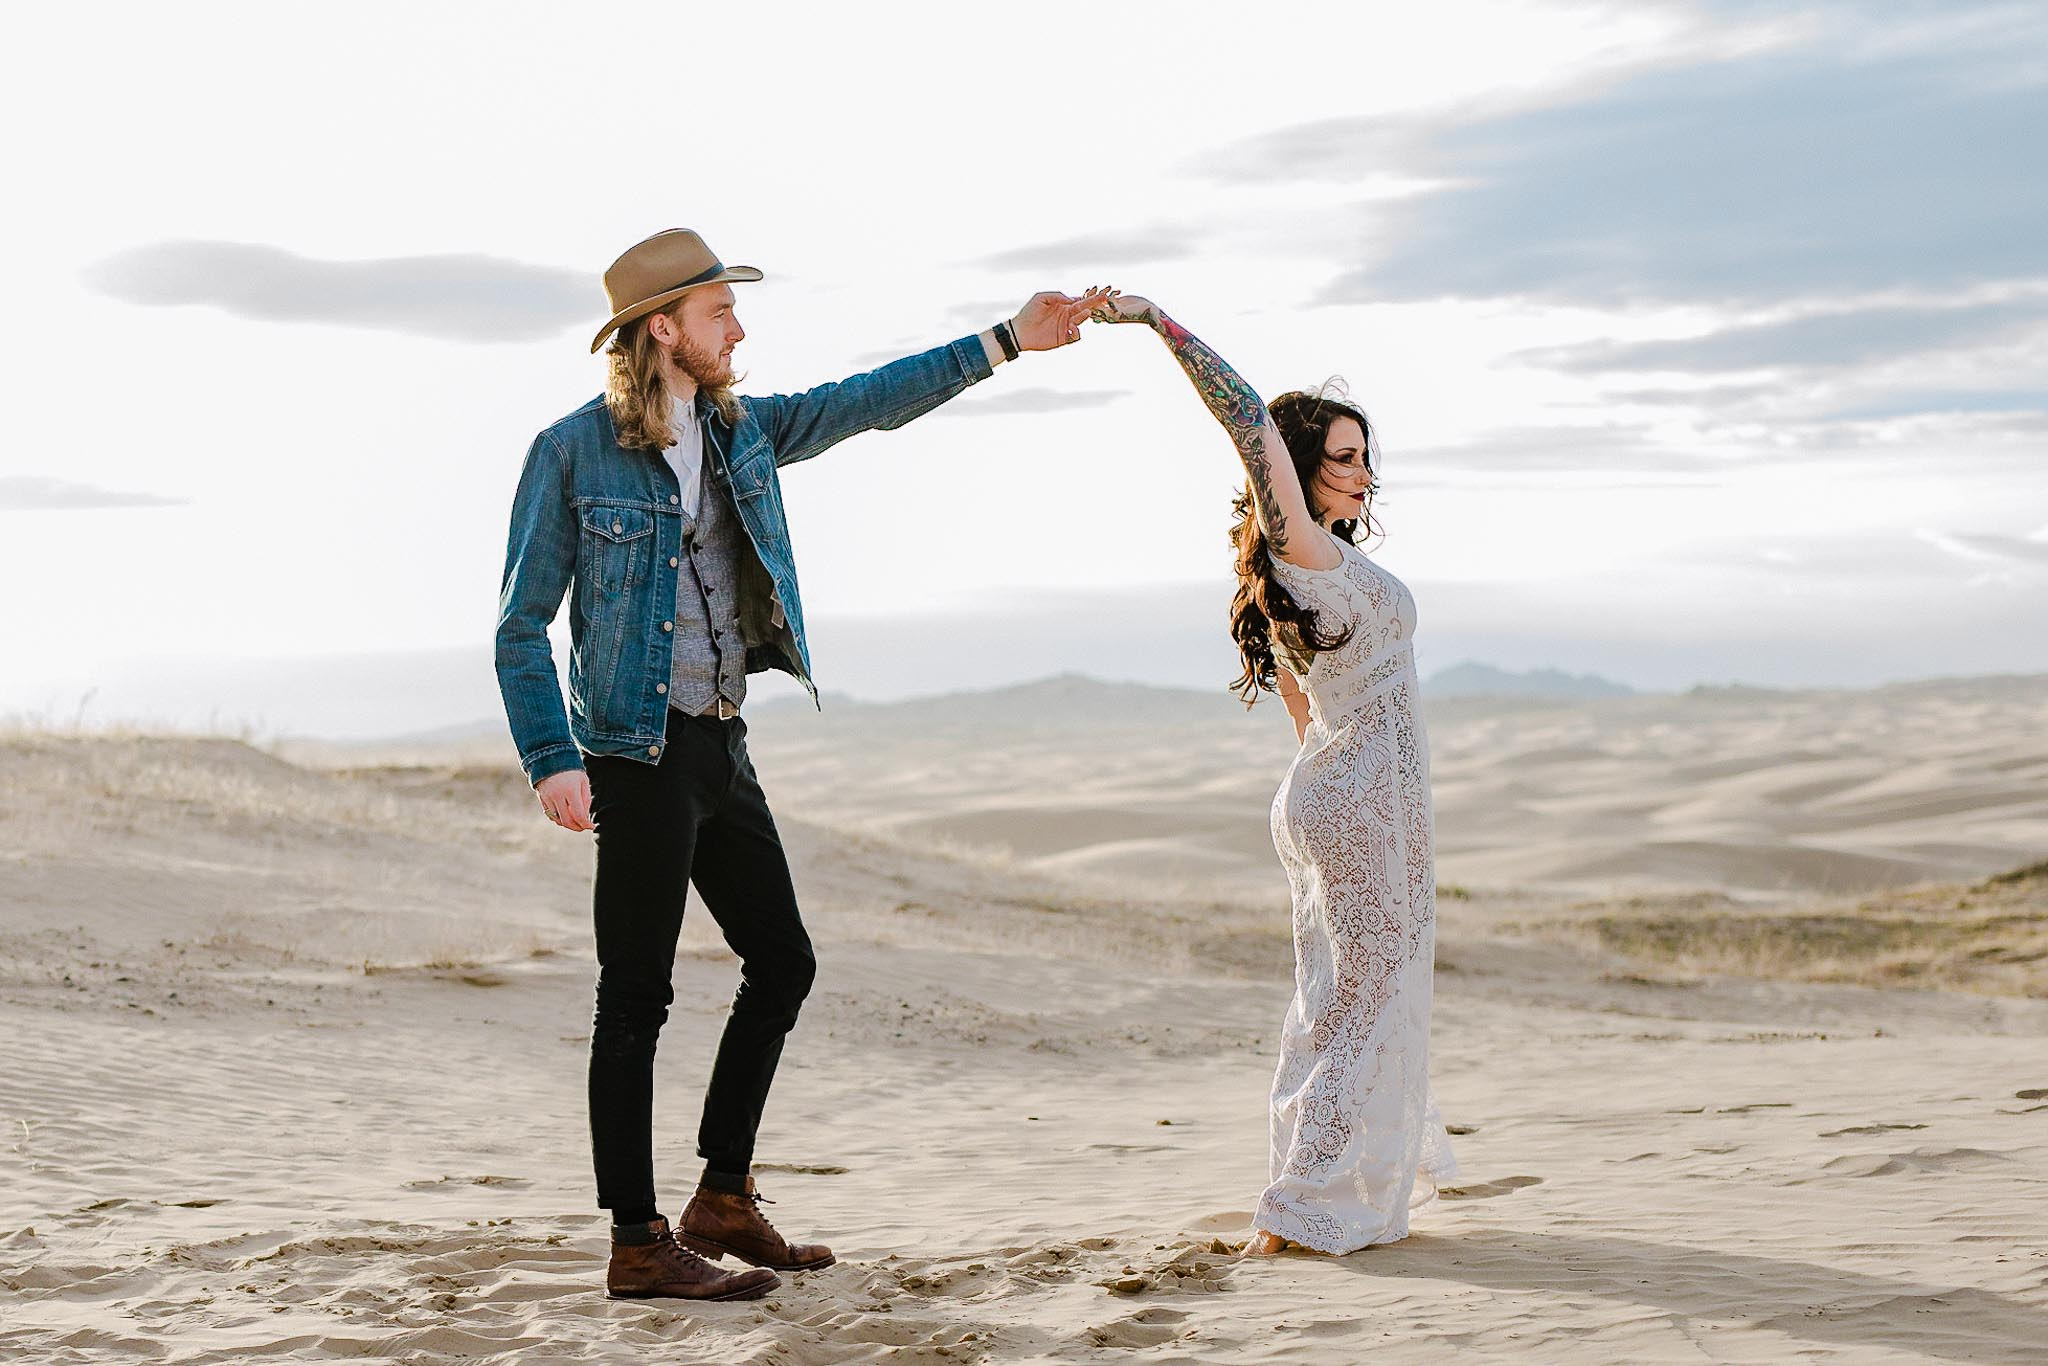 Couple in alternative wedding clothes dance at the Little Sahara Sand Dunes, Utah